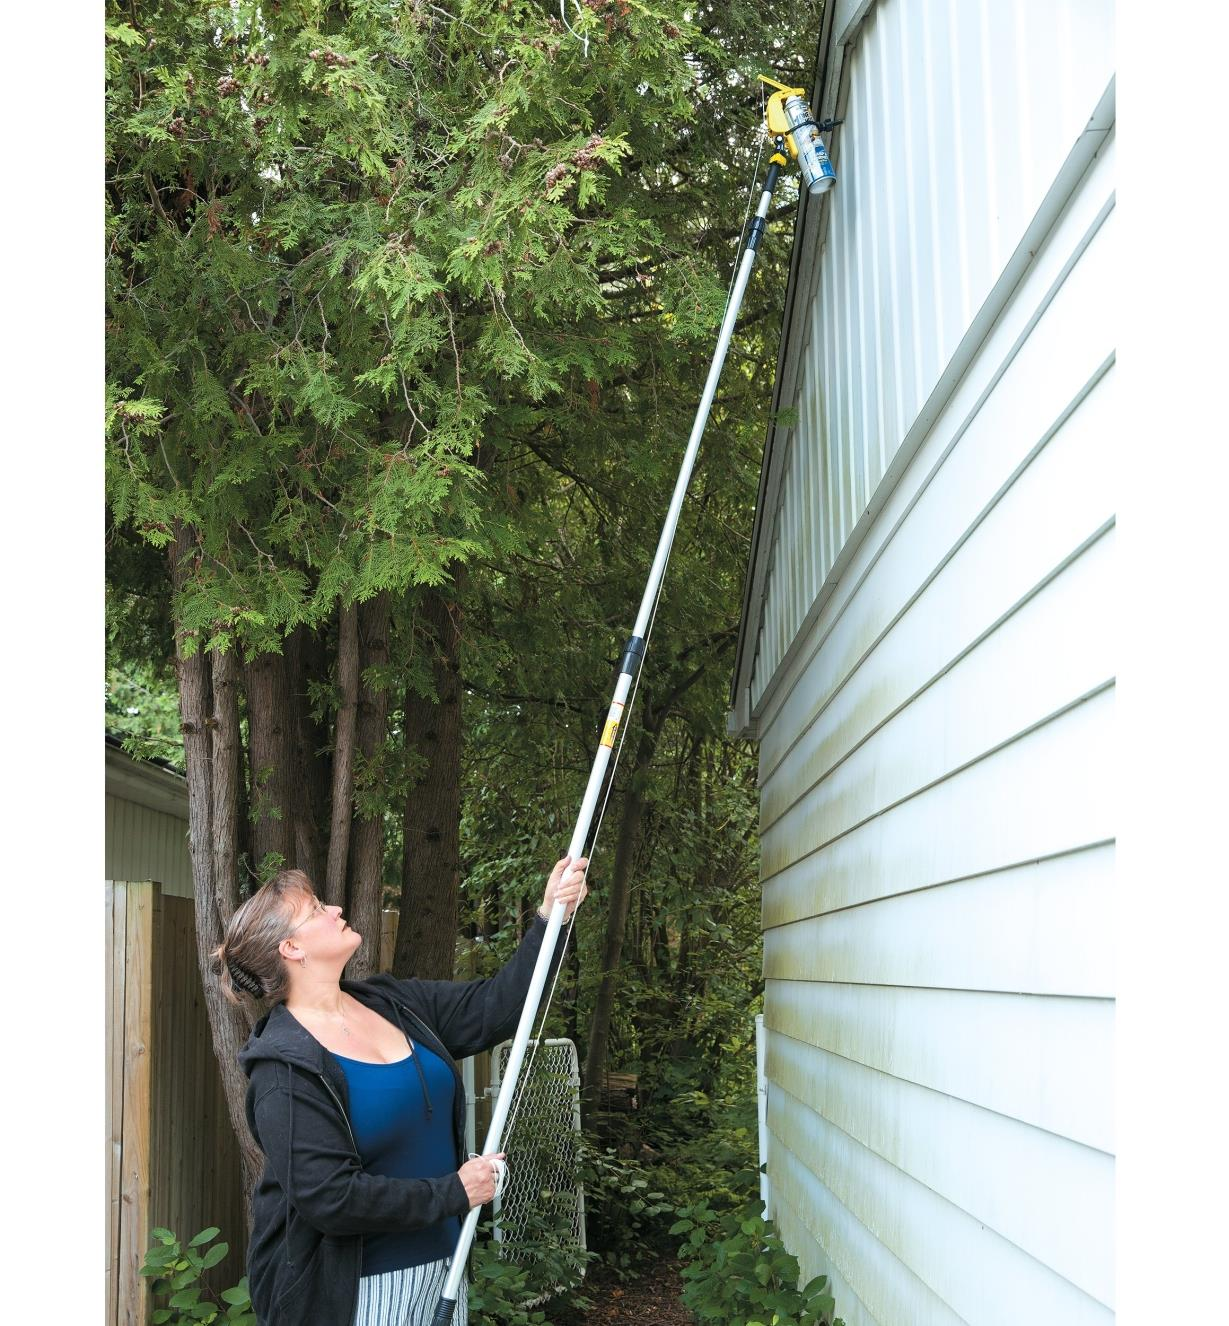 A woman holds a pole with a spray can attached to reach the upper level of a house